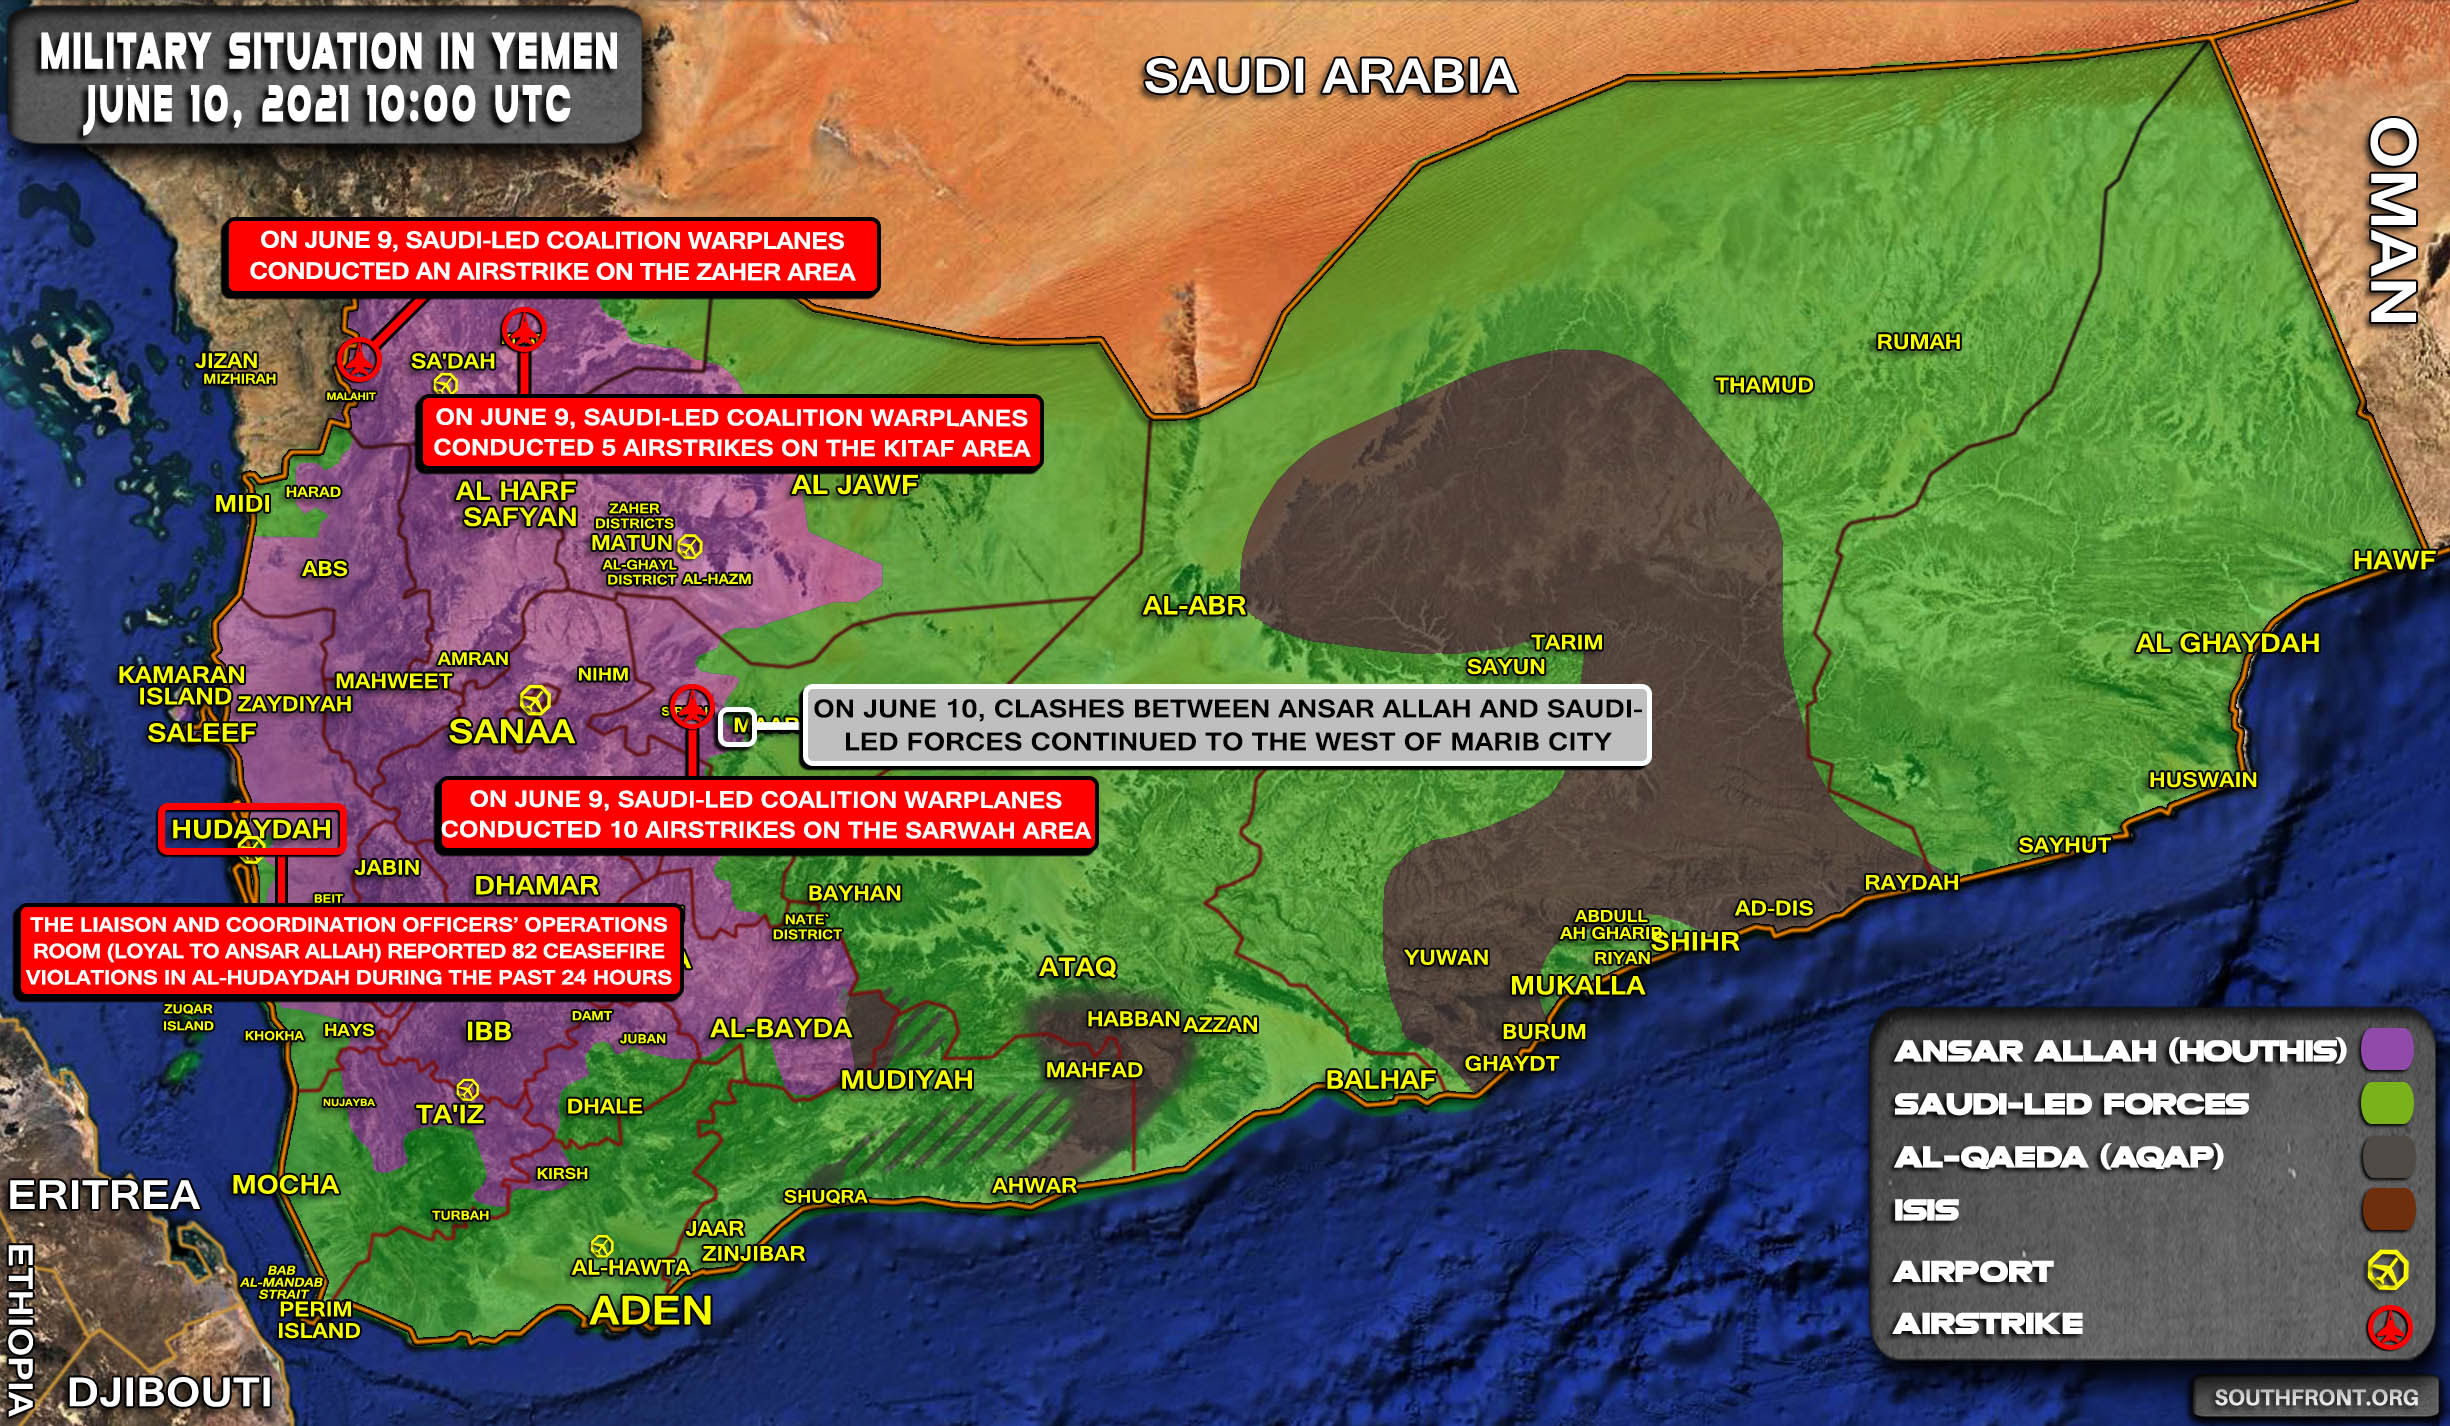 Military Situation In Yemen On June 10, 2021 (Map Update)